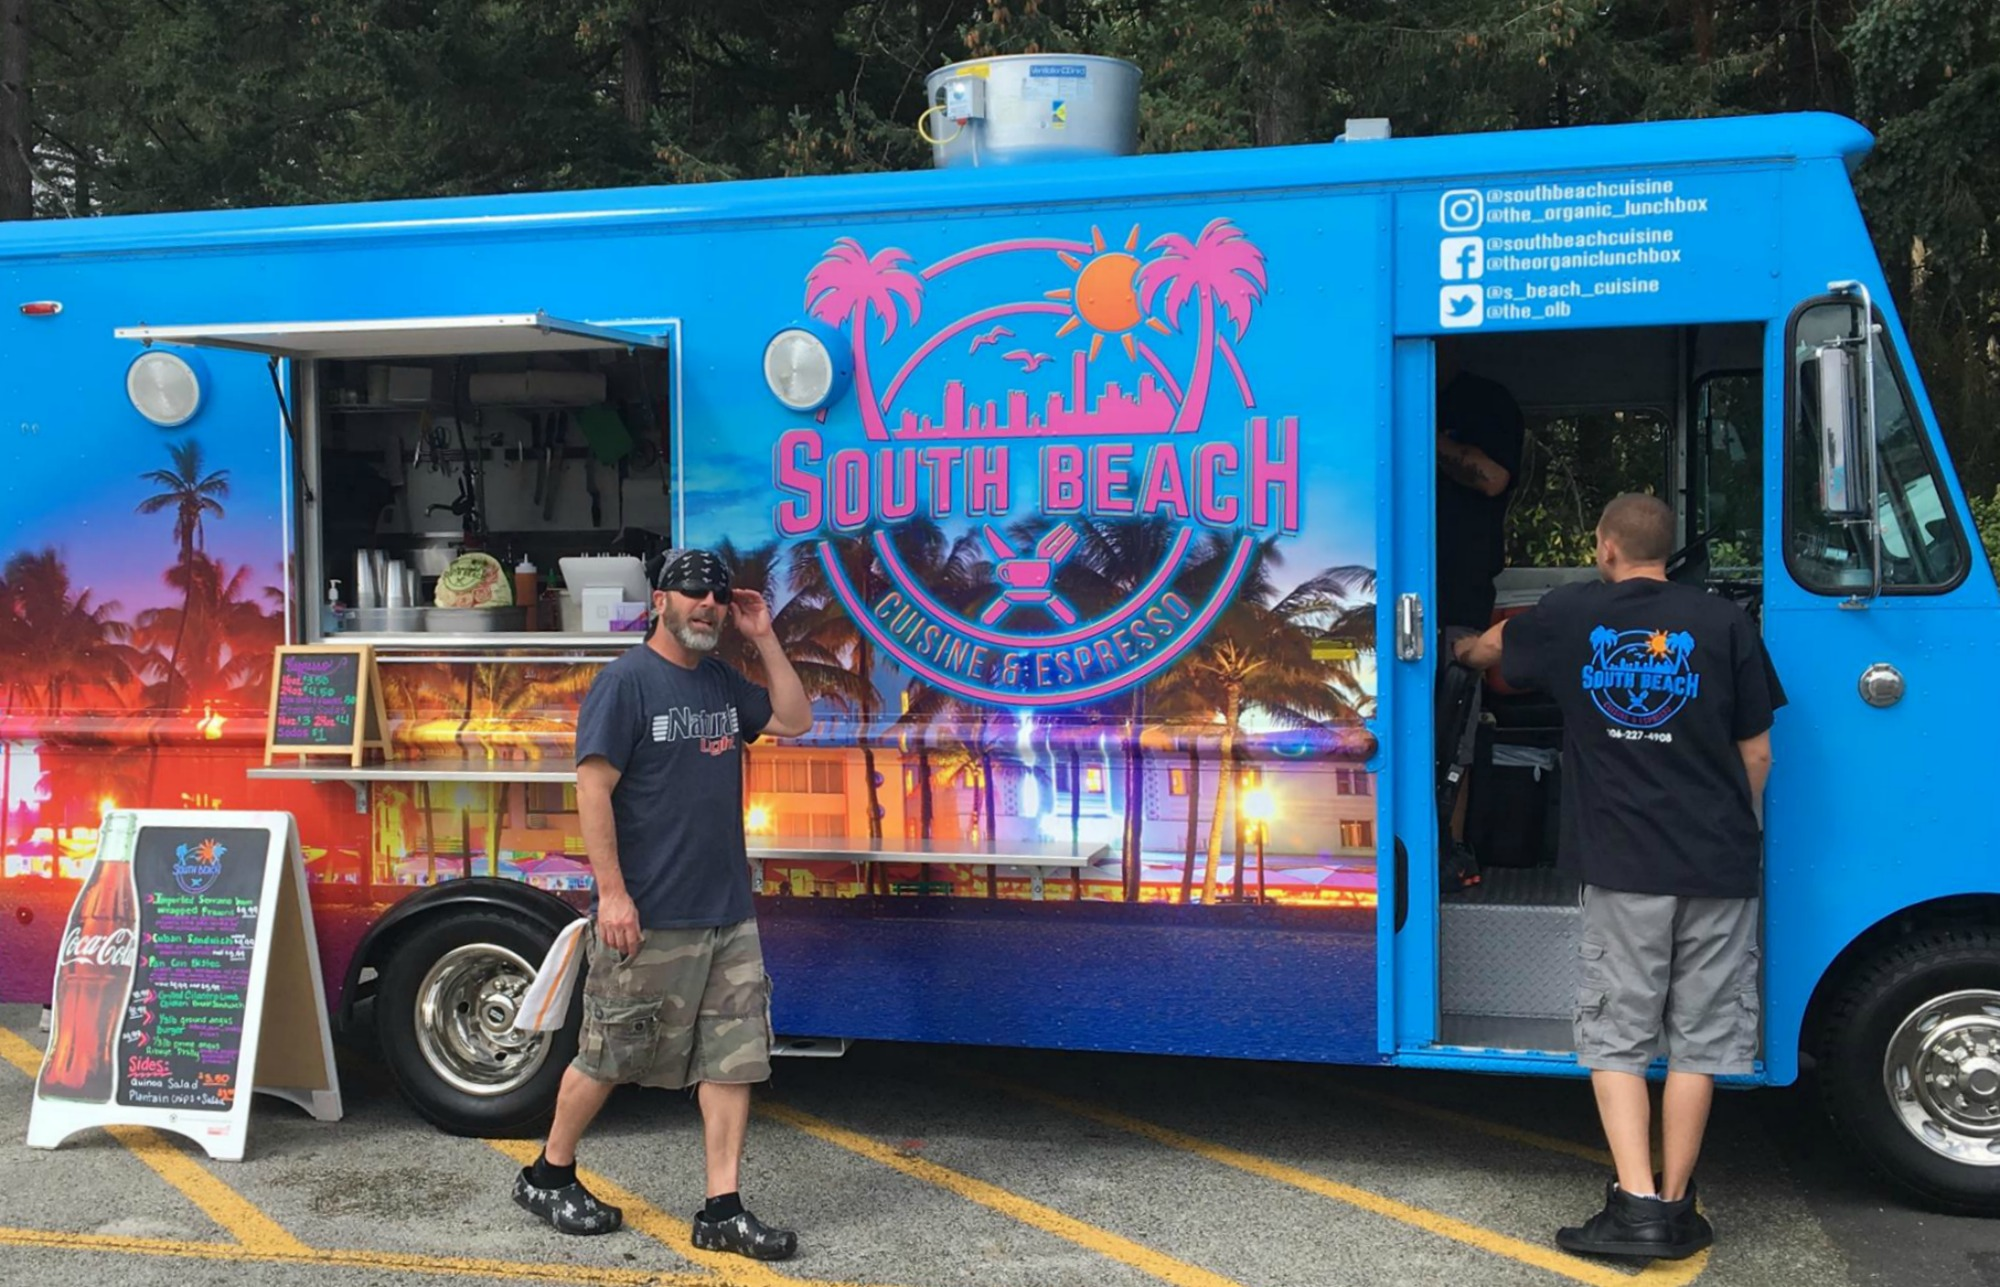 Tacoma S Food Trucks Where To Find Them And Check Out South Beach